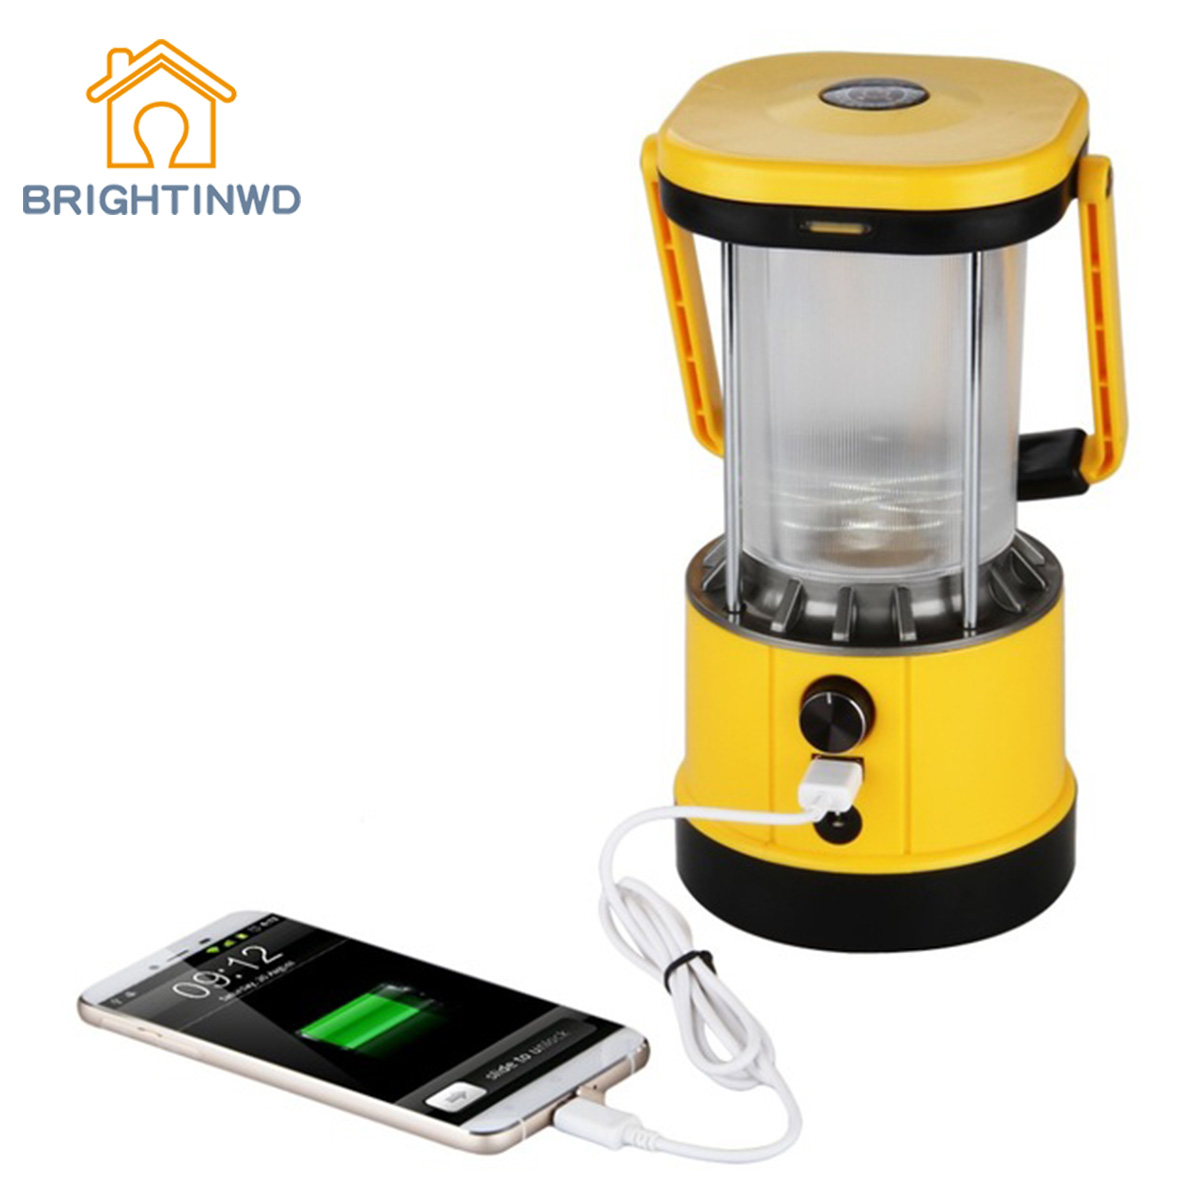 BRIGHTINWD Portable Lantern Solar Camping LED Lights USB Output for Cell Phone Charging Hiking with EU Plug Camping Light